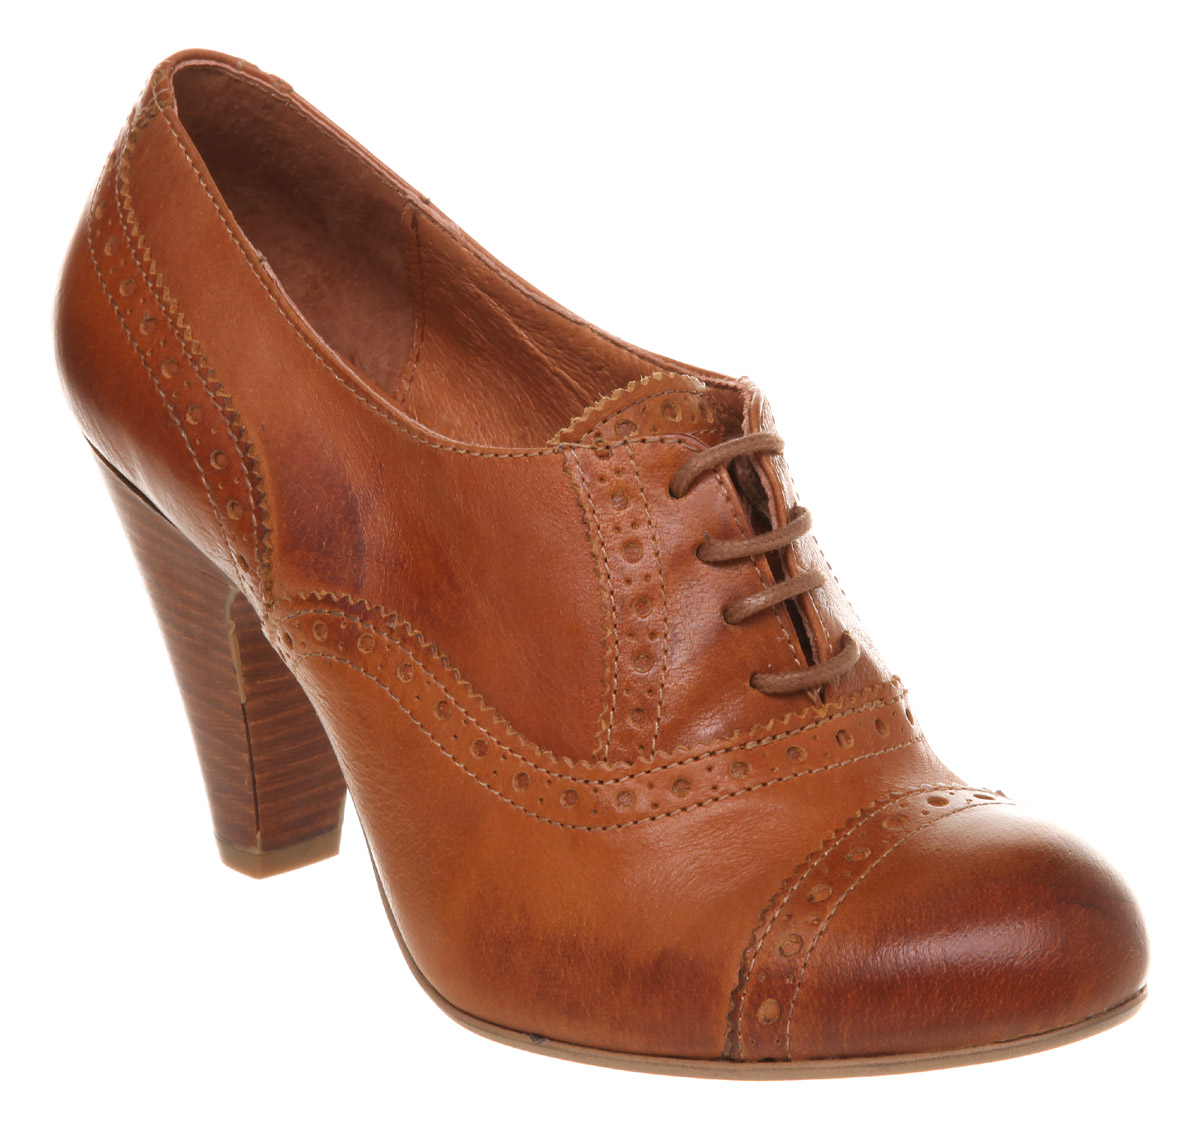 Find great deals on eBay for Womens Tan Leather Brogues in Flats and Oxfords for Women. Shop with confidence.